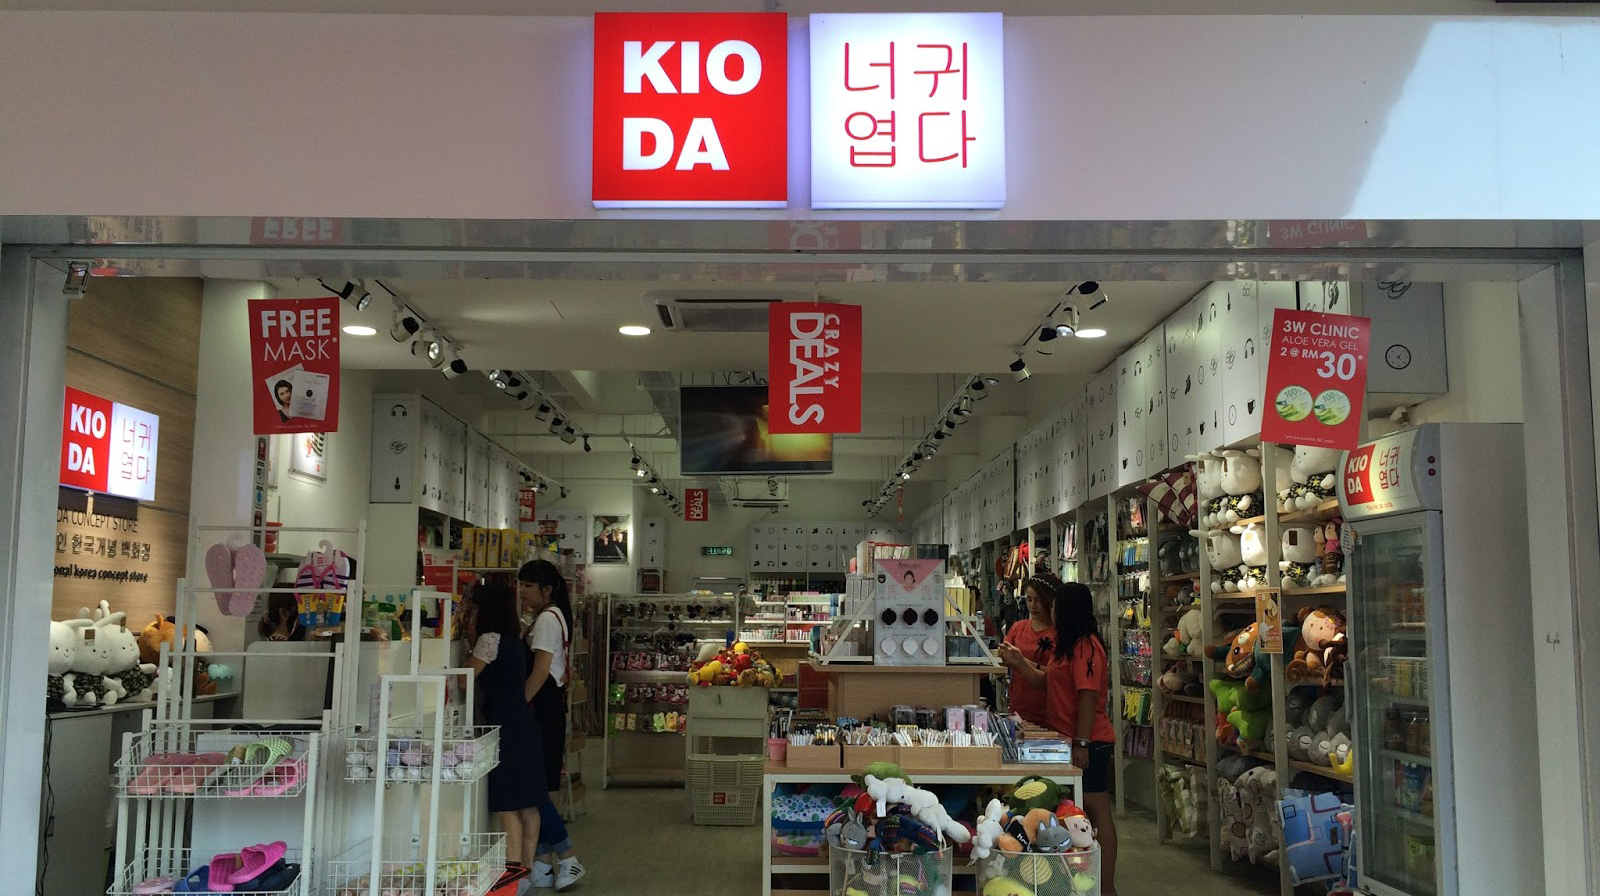 ​KIODA plans to open 300 stores in India by 2021